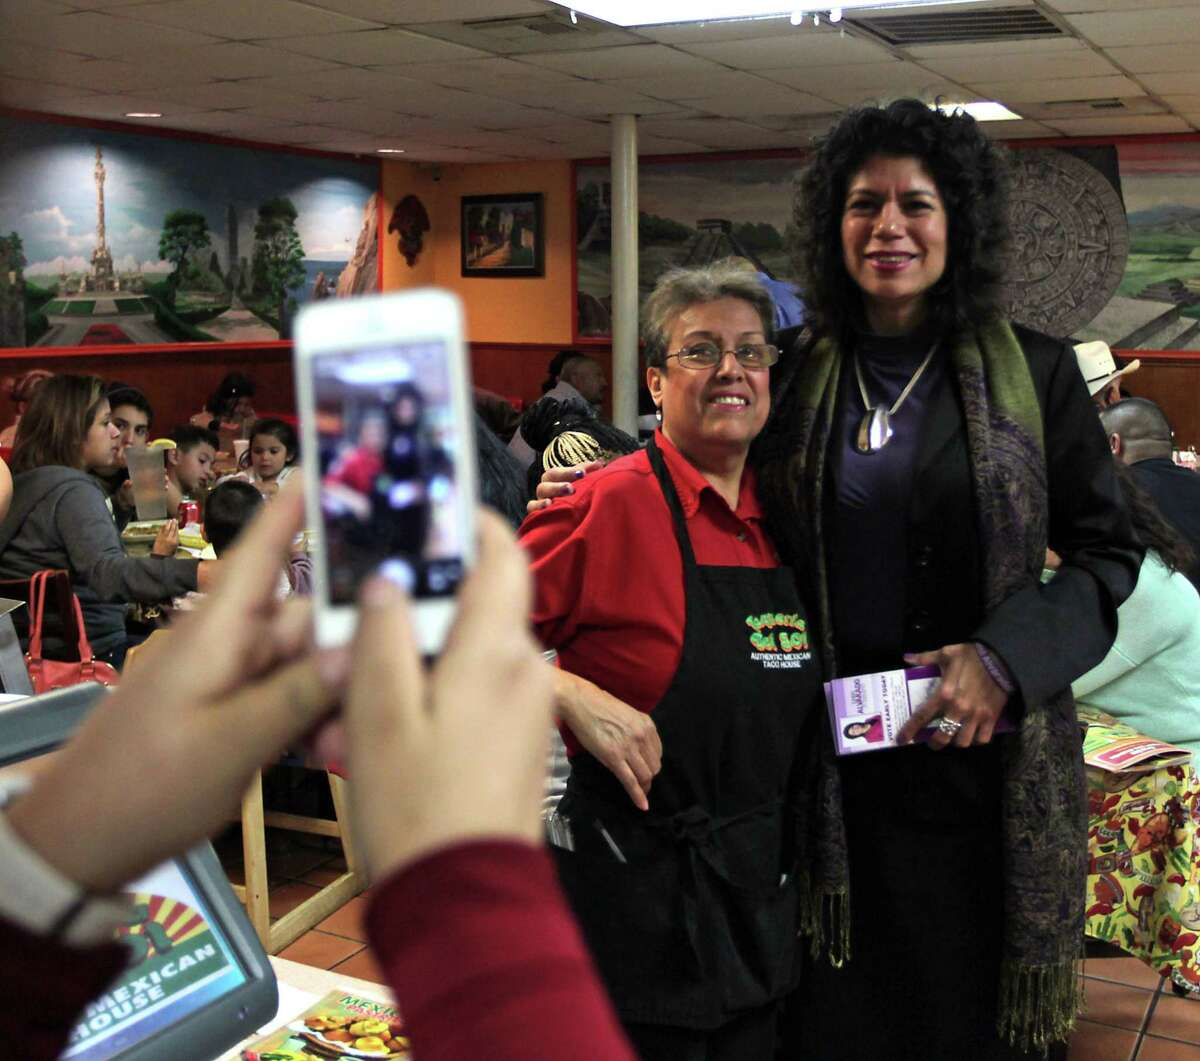 State Rep. Carol Alvarado right, poses for a photograph with Maria Schaefer at Taqueria Del Sol restaurant on Saturday. Alvarado was defeated by Sylvia Garcia in the race to fill the Texas Senate District 6 seat.